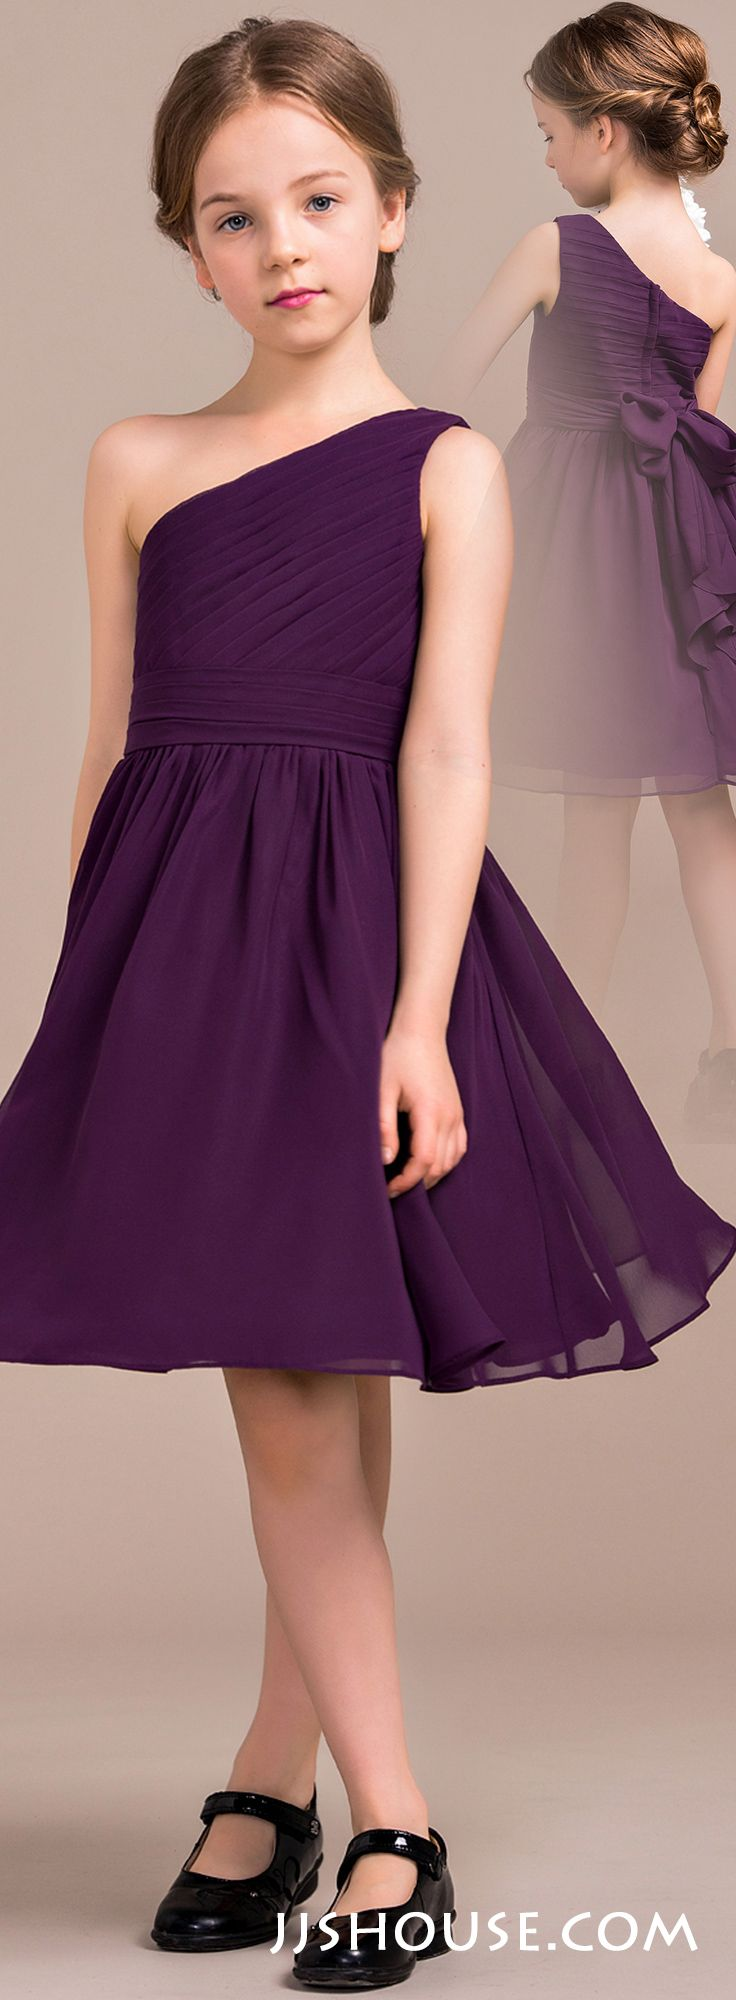 A nice choice for your junior bridesmaids. It is the right mix of cute and grown-up. #jjshouse